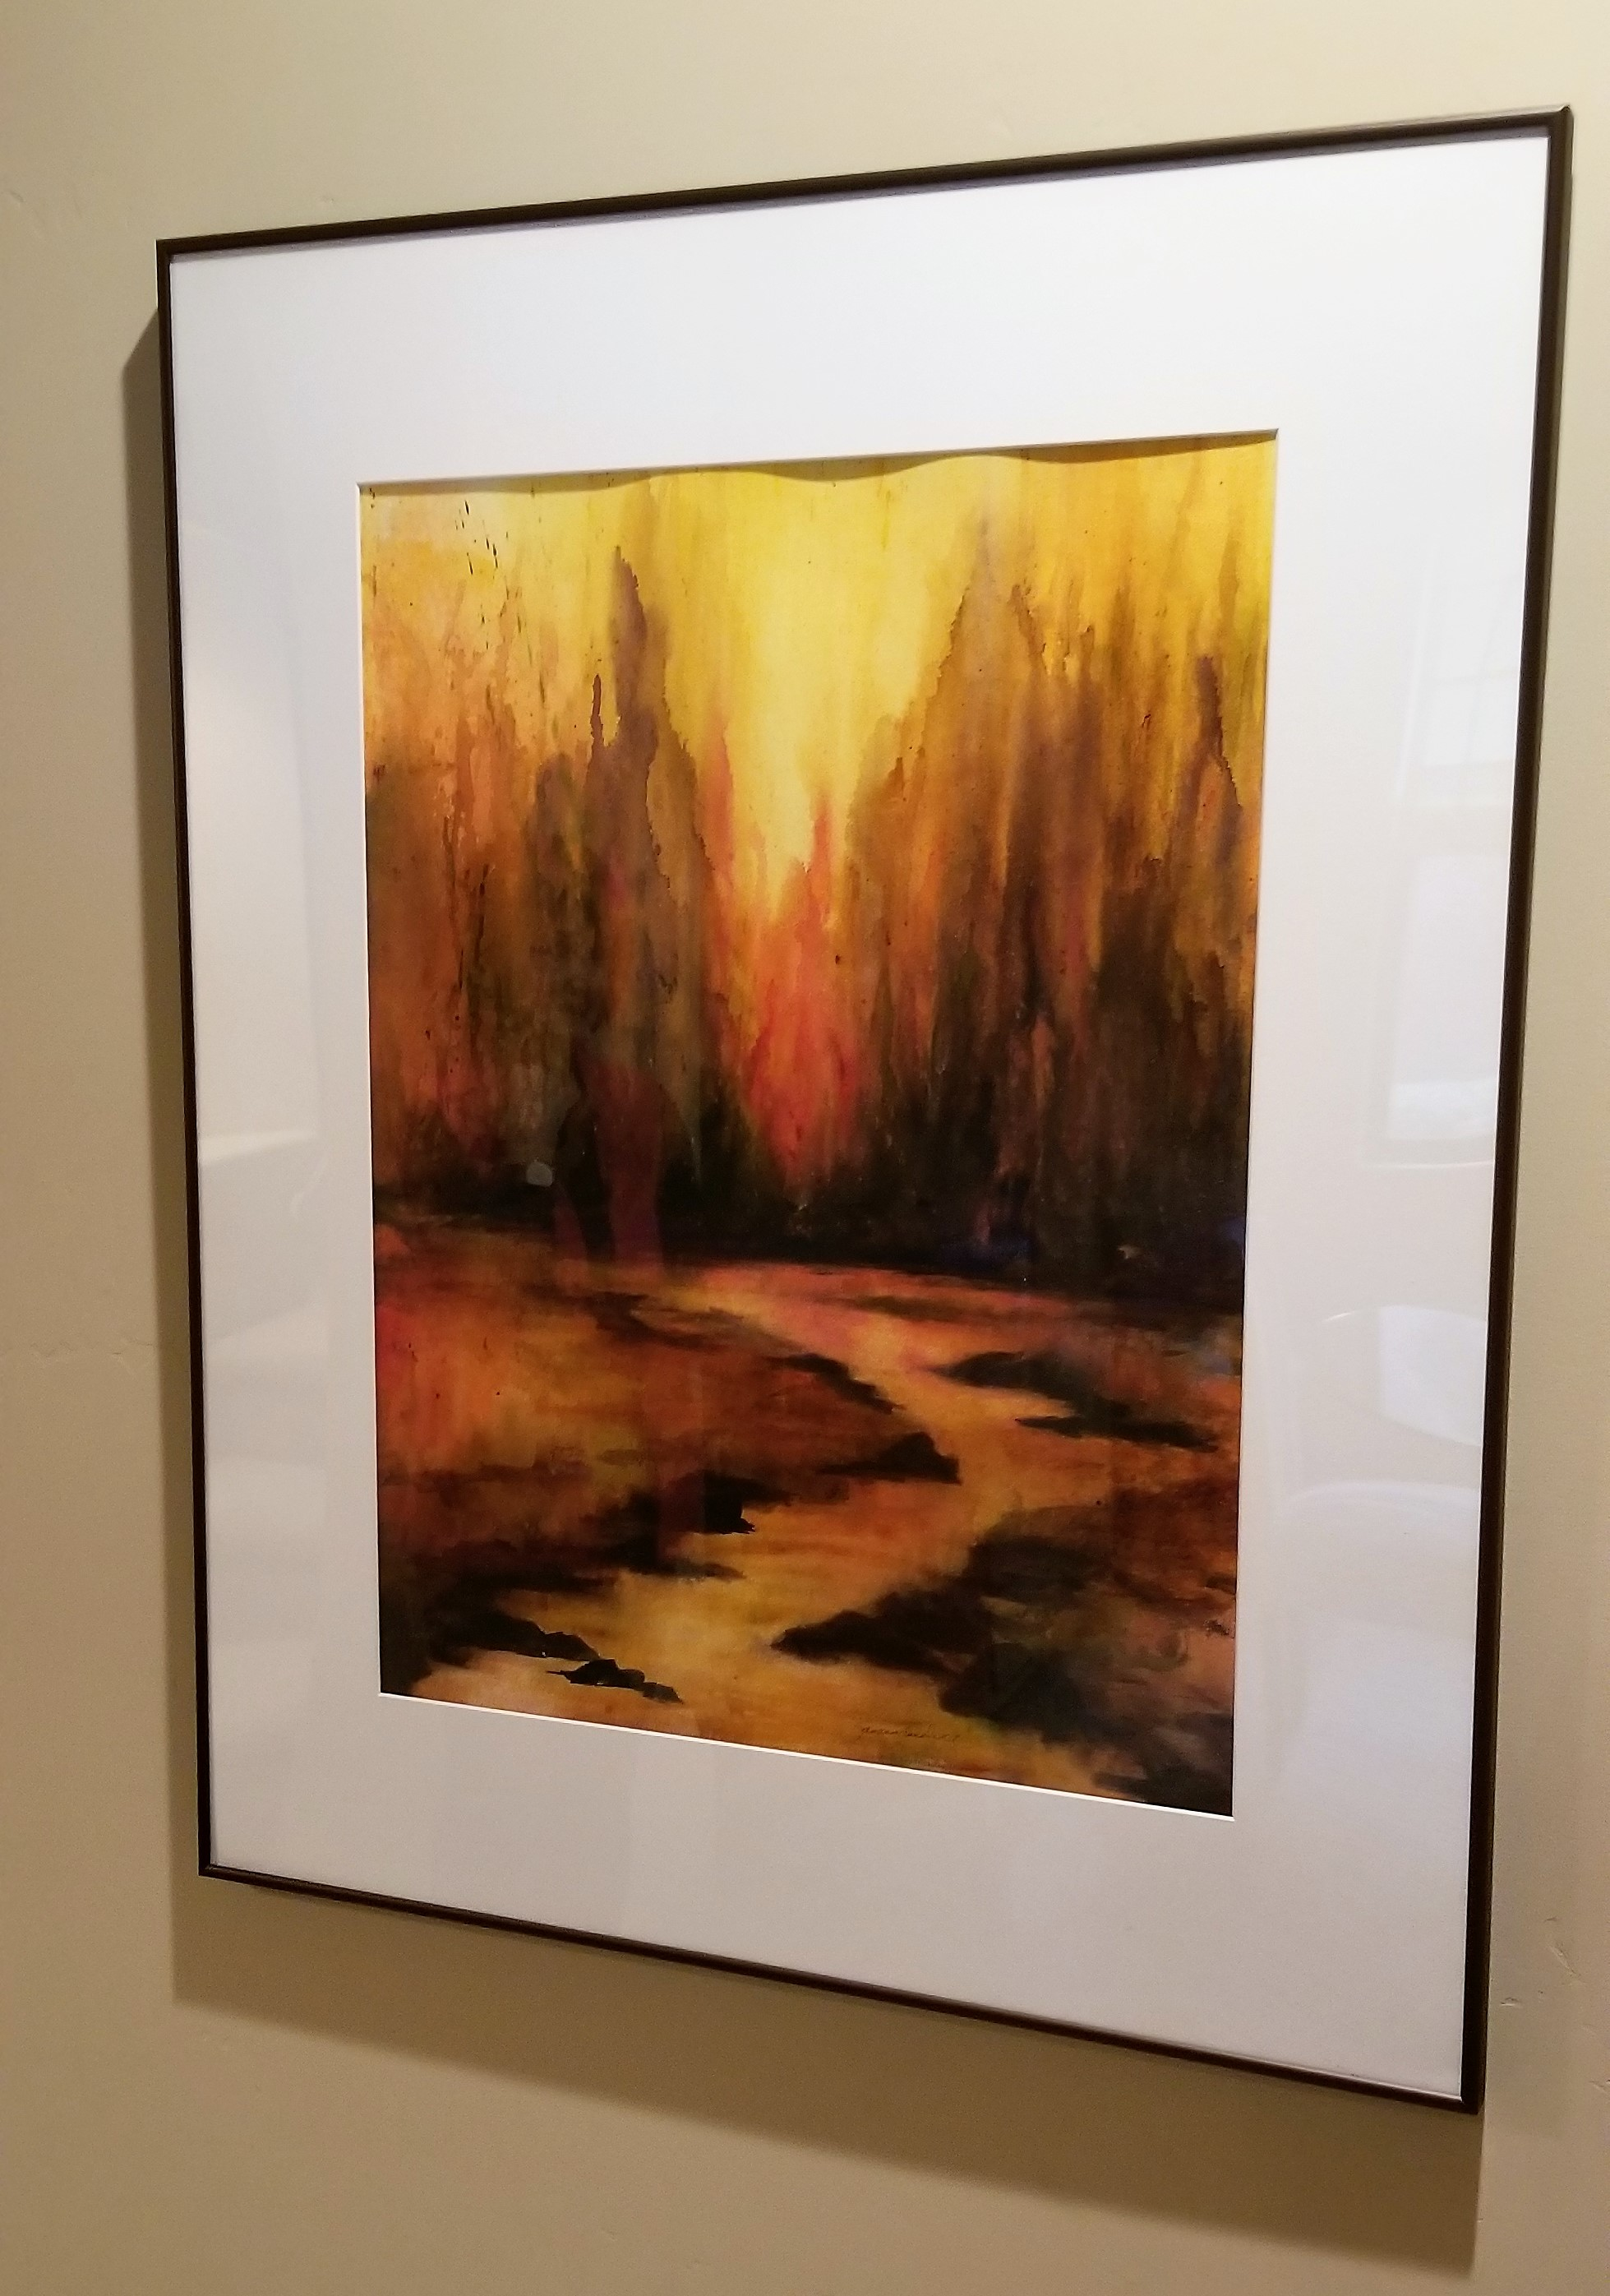 This painting was honored with an Award of Merit in the Western Federation of Watercolor Societies Exhibition in 2012.